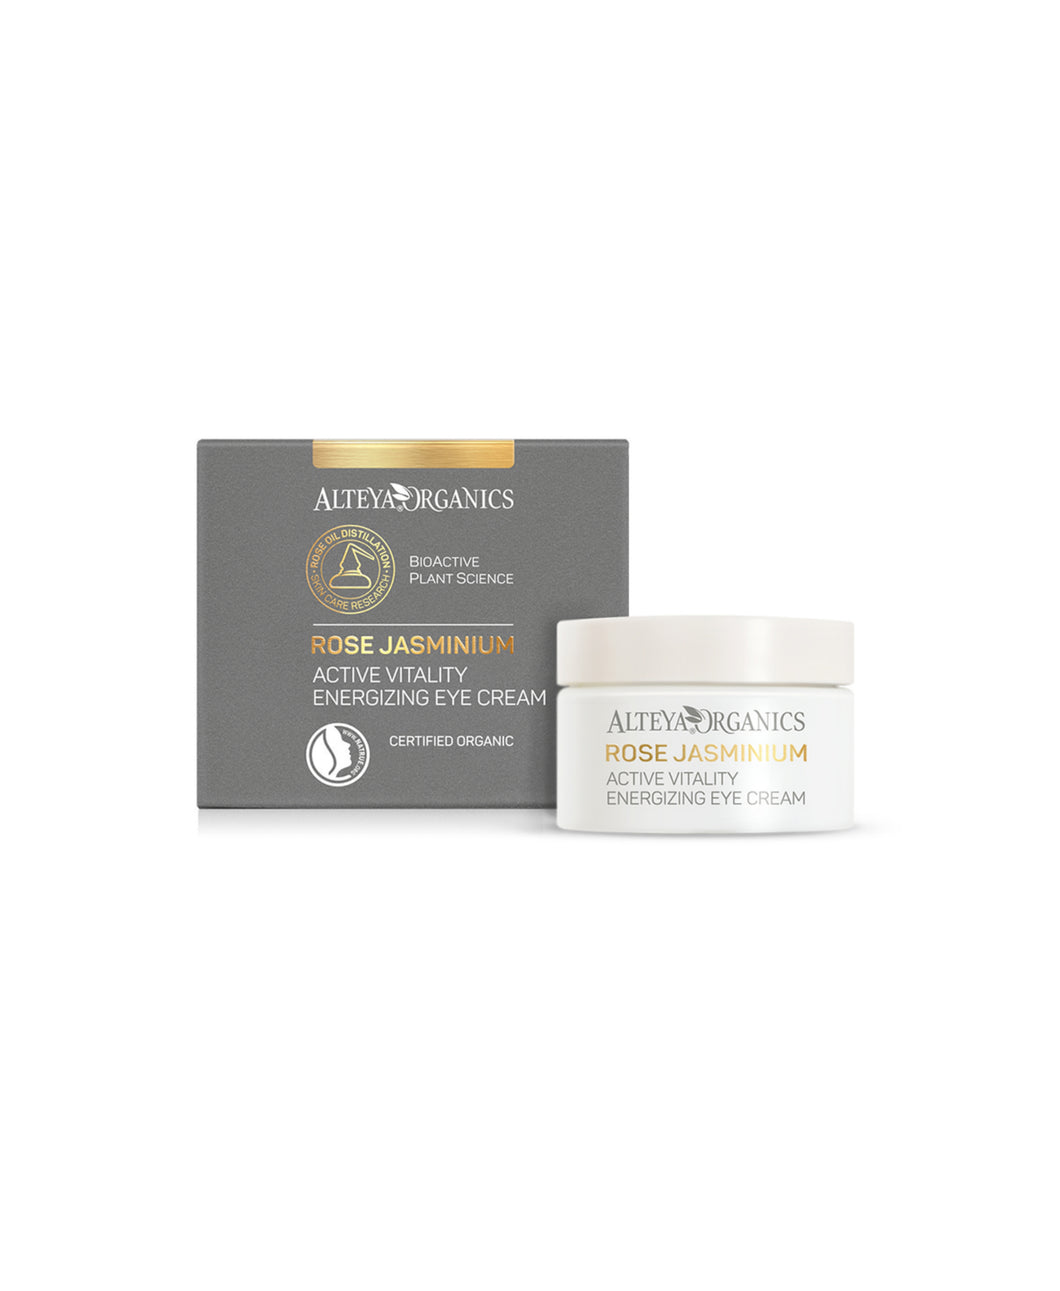 Alteya Organics - Rose Jasminium Active Vitality Engergizing Eye Cream 15ml